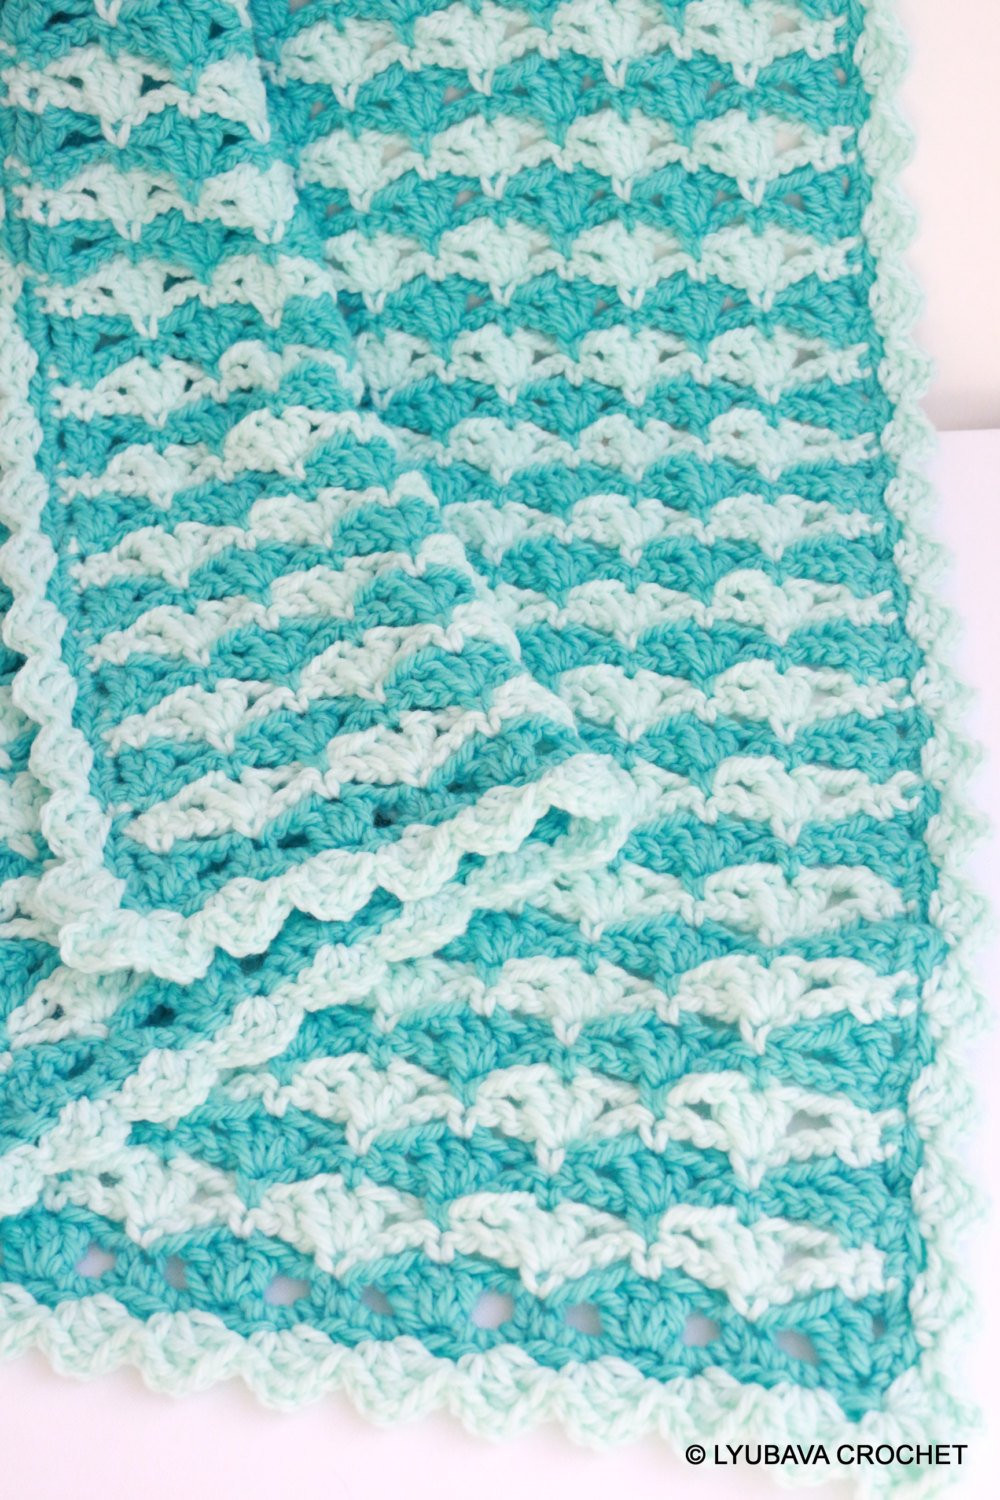 Baby Boy Crochet Blanket Patterns Inspirational Turquoise Baby Blanket Chunky Crochet Blanket for Baby Boy Of Baby Boy Crochet Blanket Patterns Beautiful Pics for Crochet Baby Boy Blanket Patterns